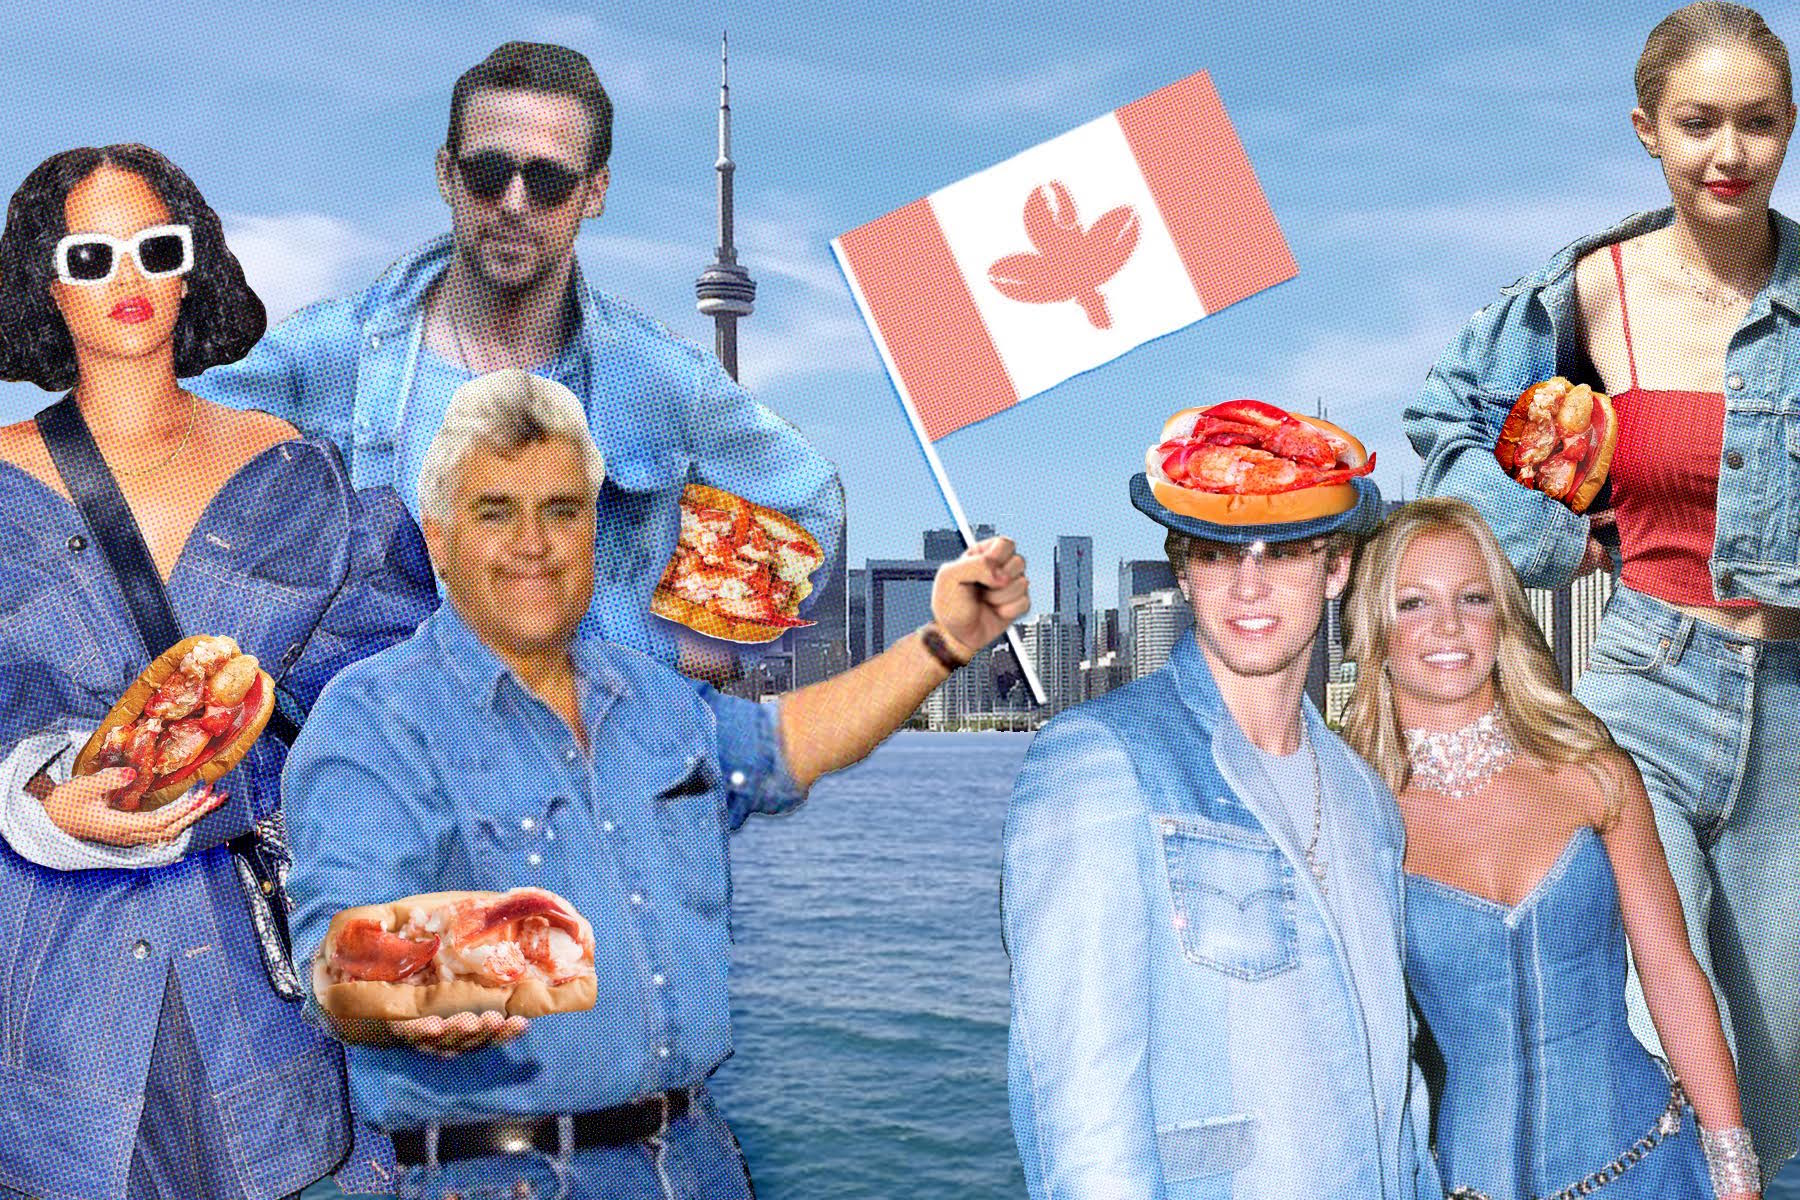 Get a Free Lobster Roll for Donning a 'Canadian Tuxedo' This Friday